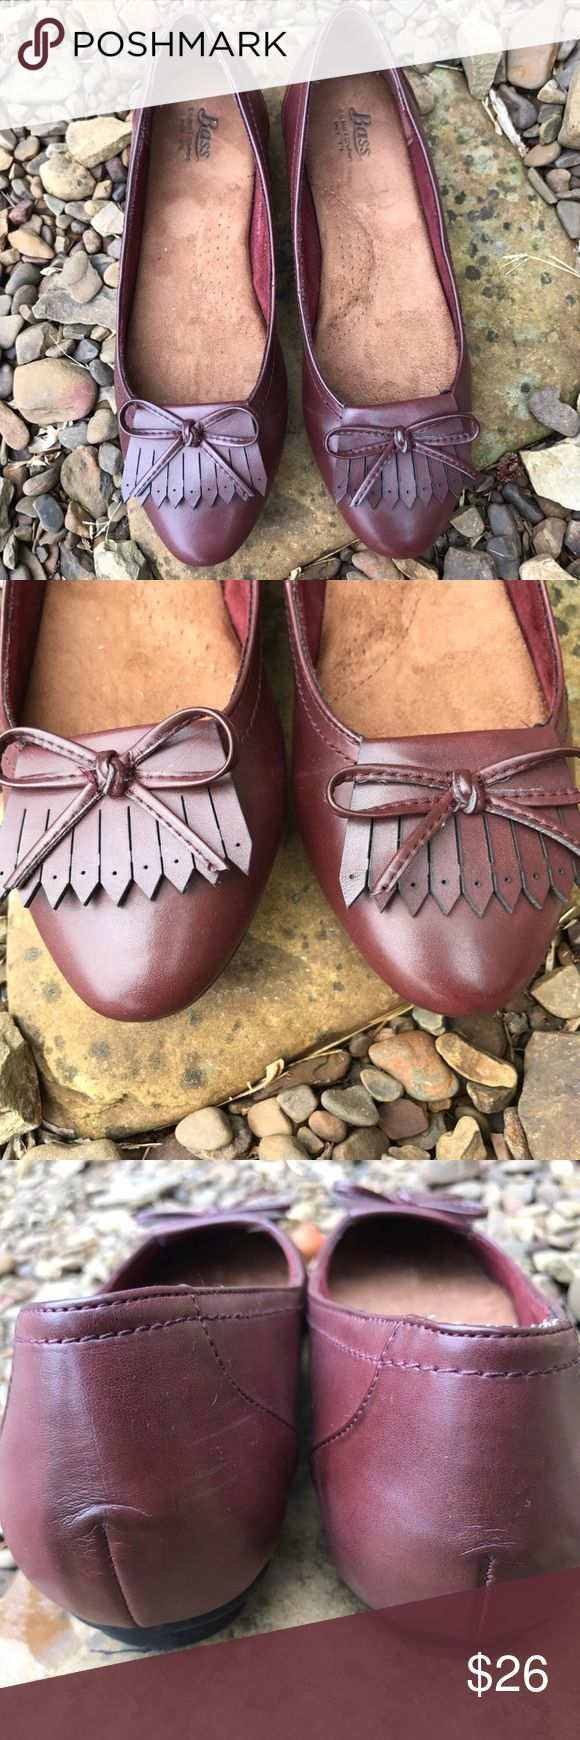 Bass Burgundy Kayden Kiltie Loafers Slip-ons Flats Burgundy toned faux leather with fringe and bow detail. Padded footbed and rubber sole. Labeled as a size 7.5. In excellent pre-loved condition!  ✅ Offers  ✅ Bundle discounts  ❌ Trades Bass Shoes Flats & Loafers